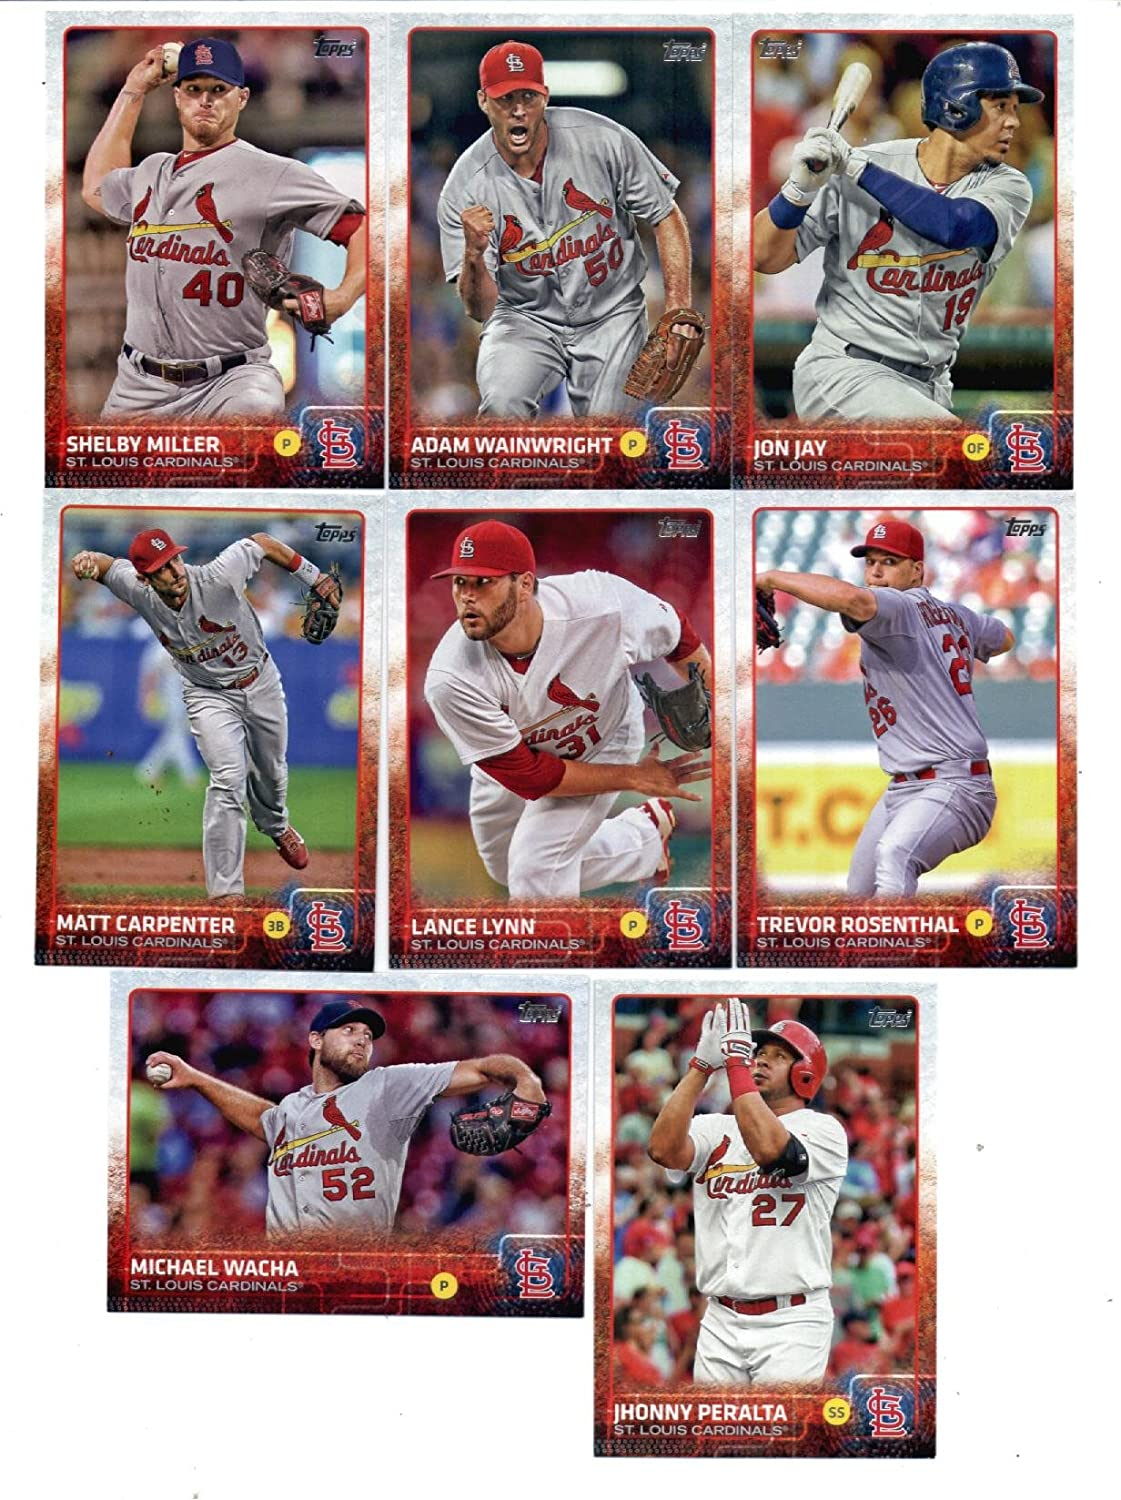 2015 Topps Baseball Cards St Louis Cardinals Team Set Series 1 8 Cards Including Jon Jay Michael Wacha Adam Wainwright Shelby Miller Lance